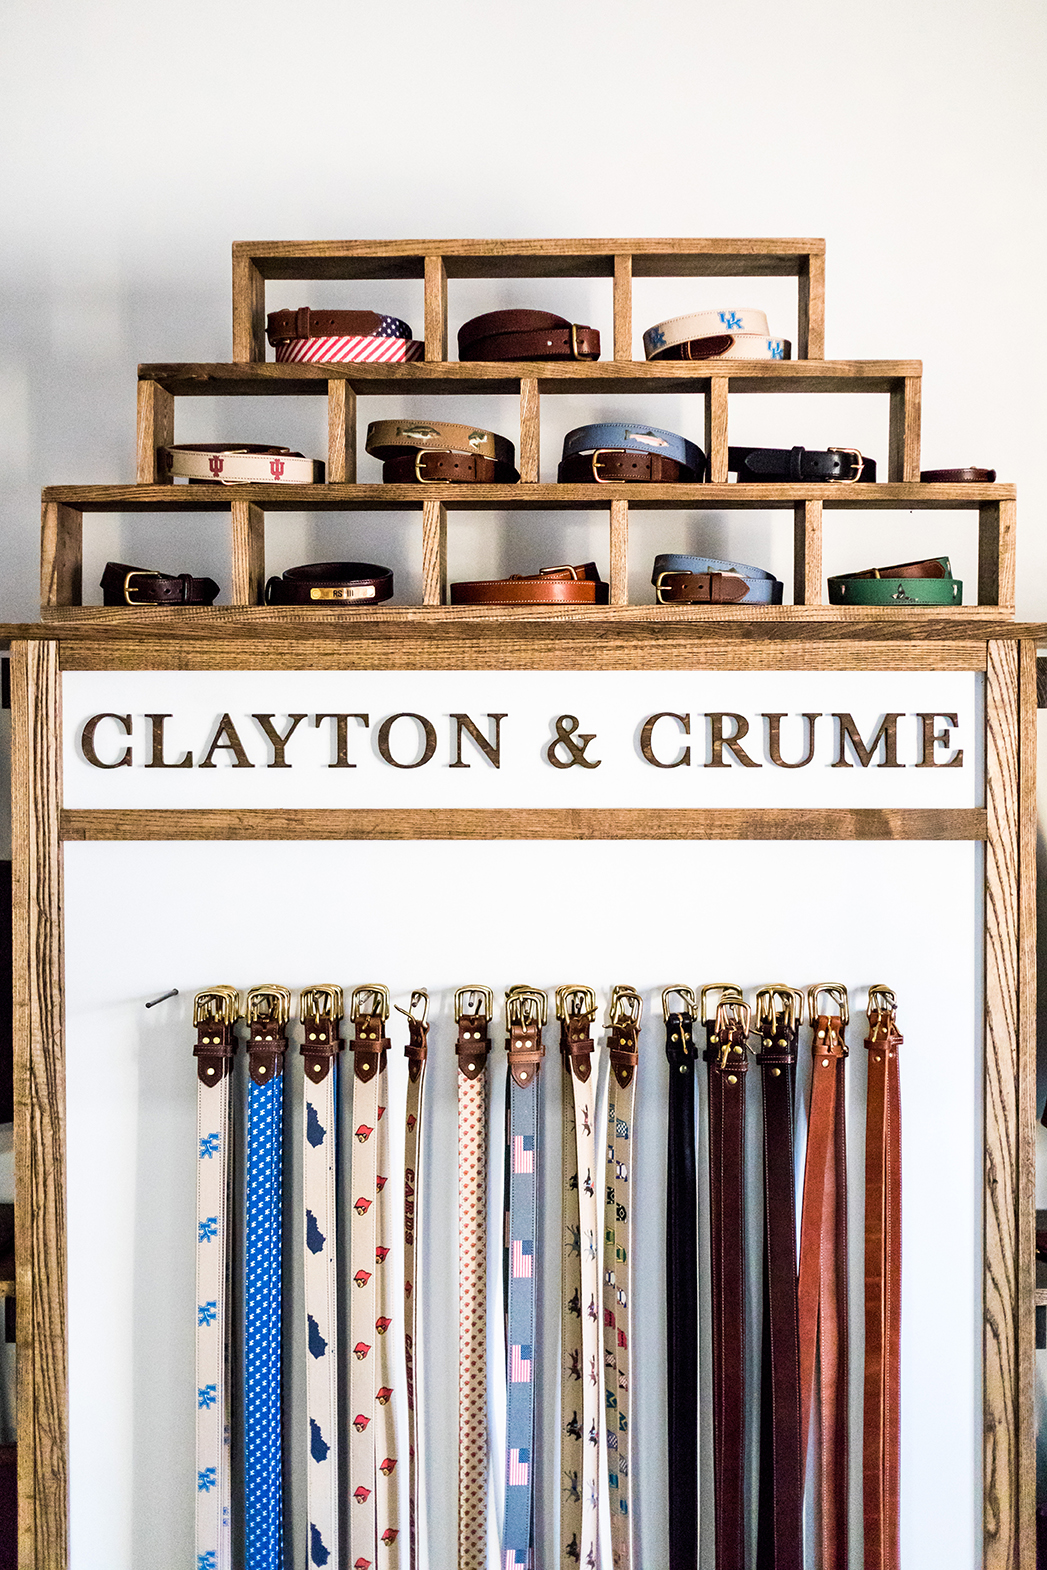 Artisans + Crafters: Clayton & Crume